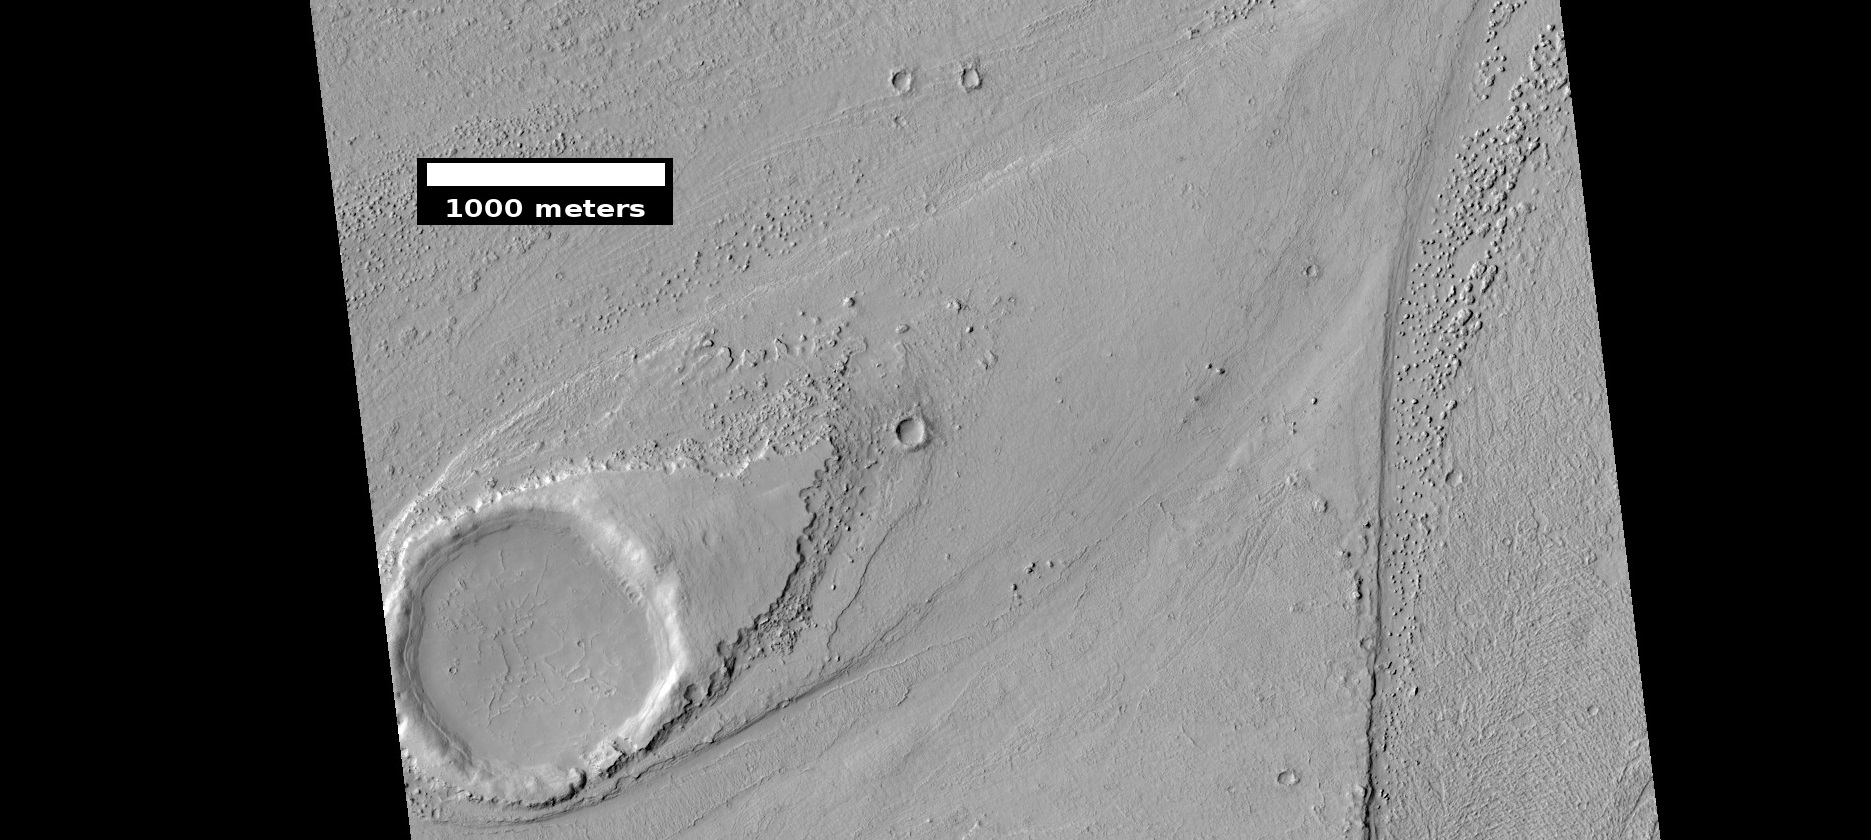 Streamlined shape showing layers, as seen by HiRISE under HiWish program